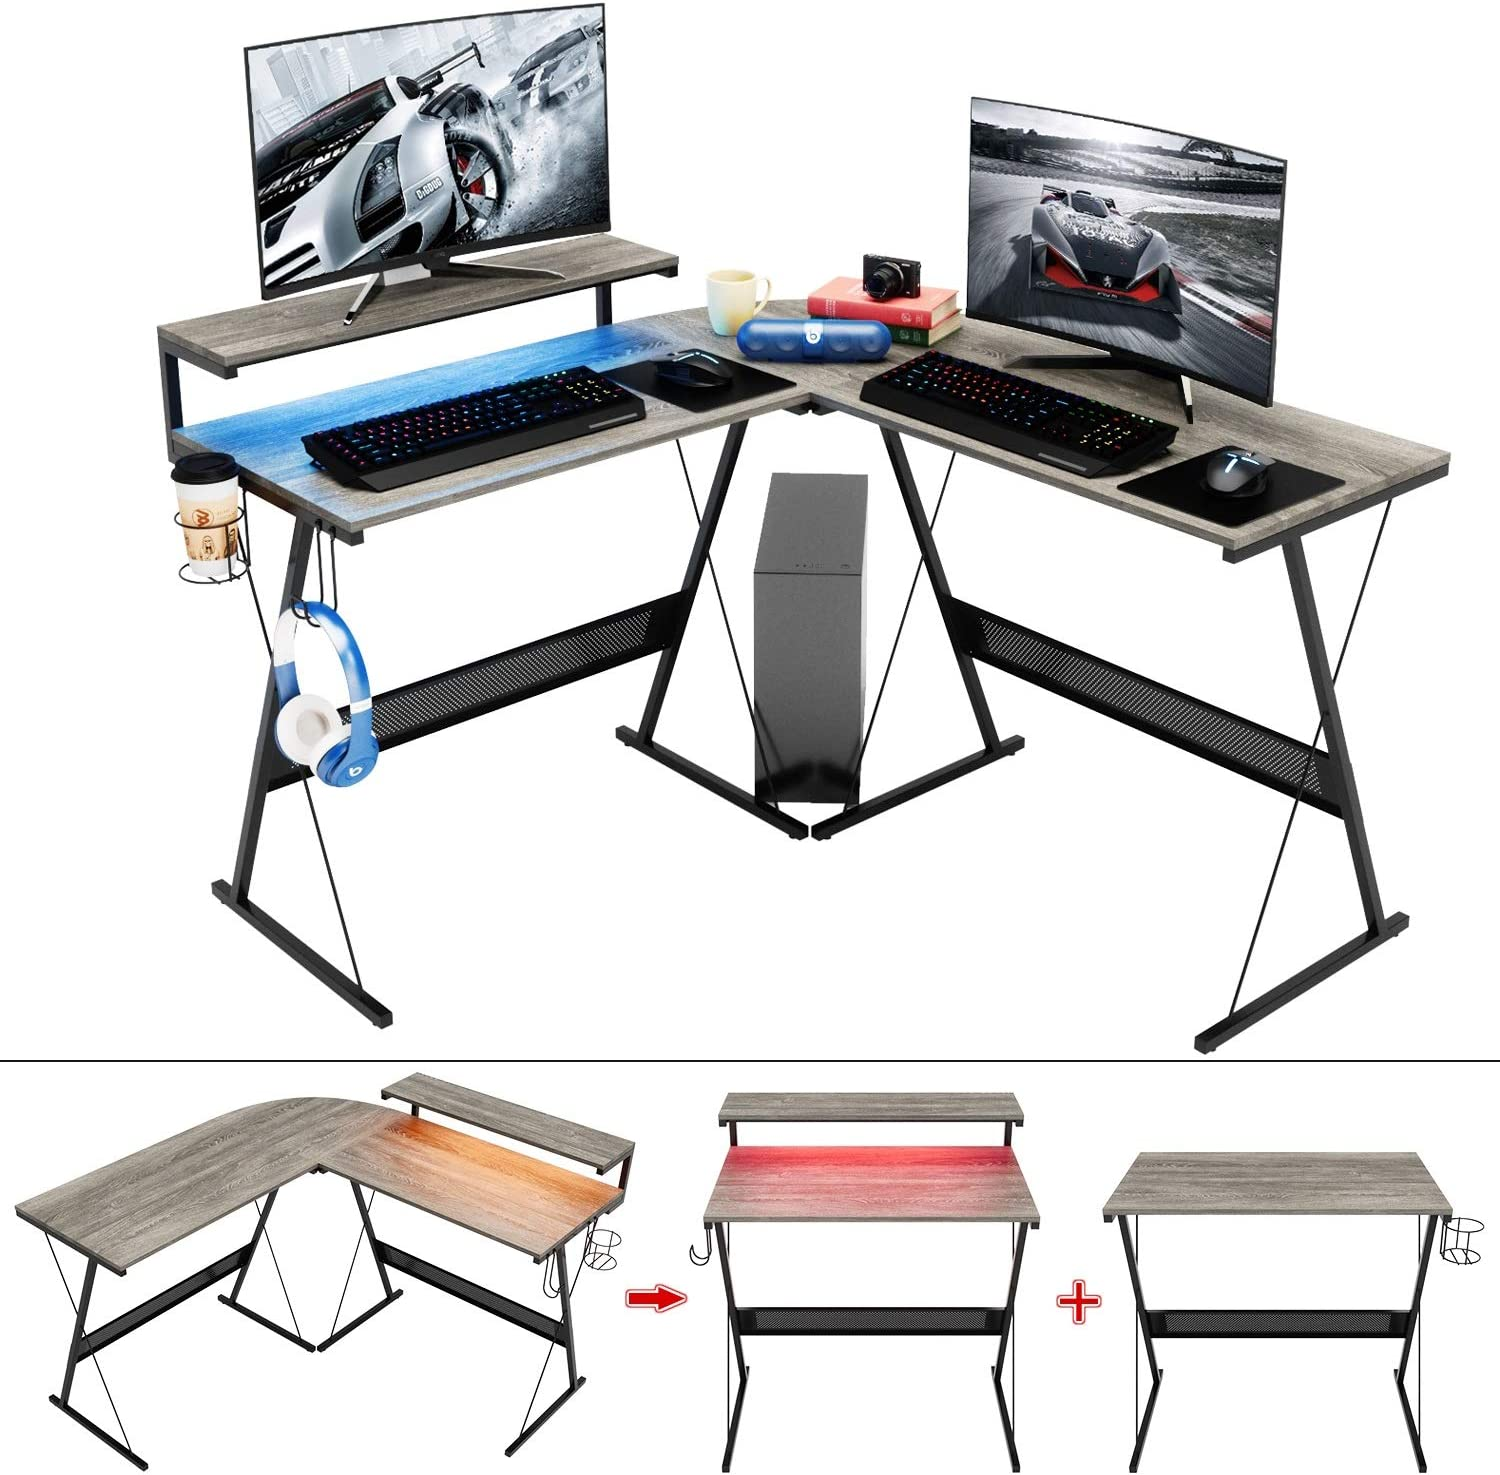 Domy Home L Shaped Computer Desk with Corner Deskth Large Monitor Stand,PC Table Workstatio,Large Modern Gaming Desk RGB LED Lights Home Office Desk Win Space-Saving, Easy to Assemble Grey Oak